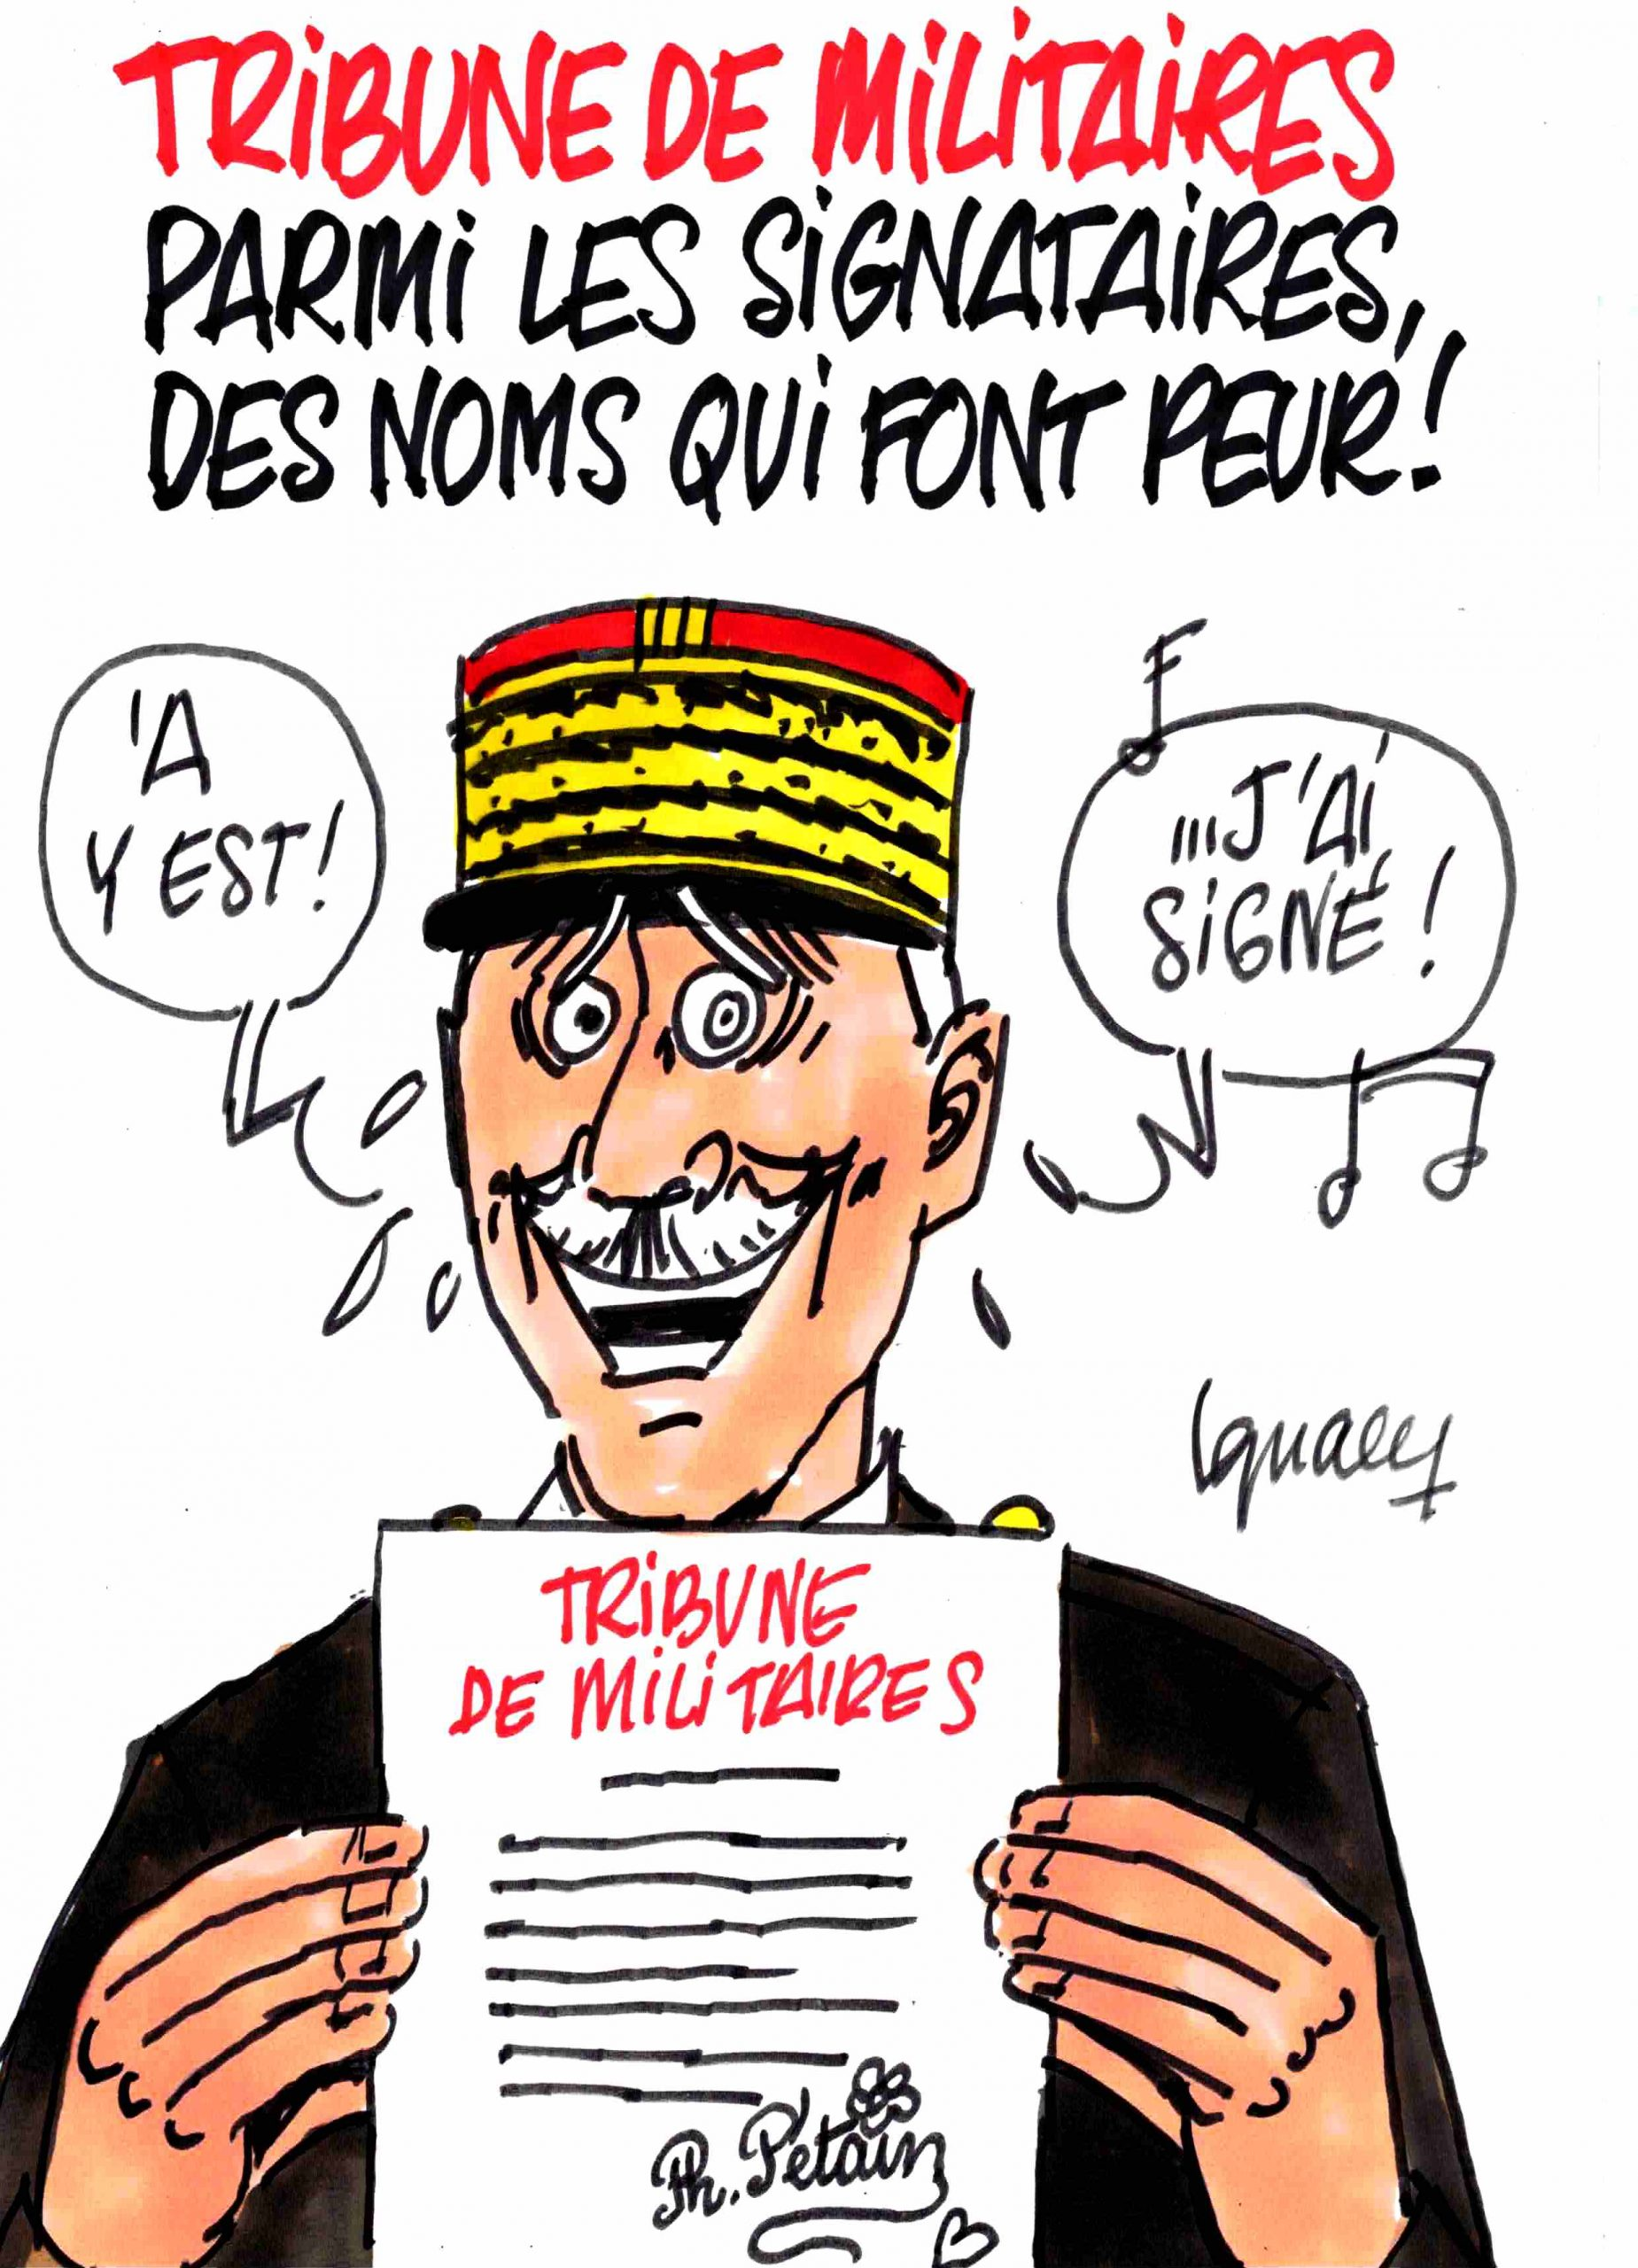 Ignace - Tribune de militaires avec des signatures qui font peur